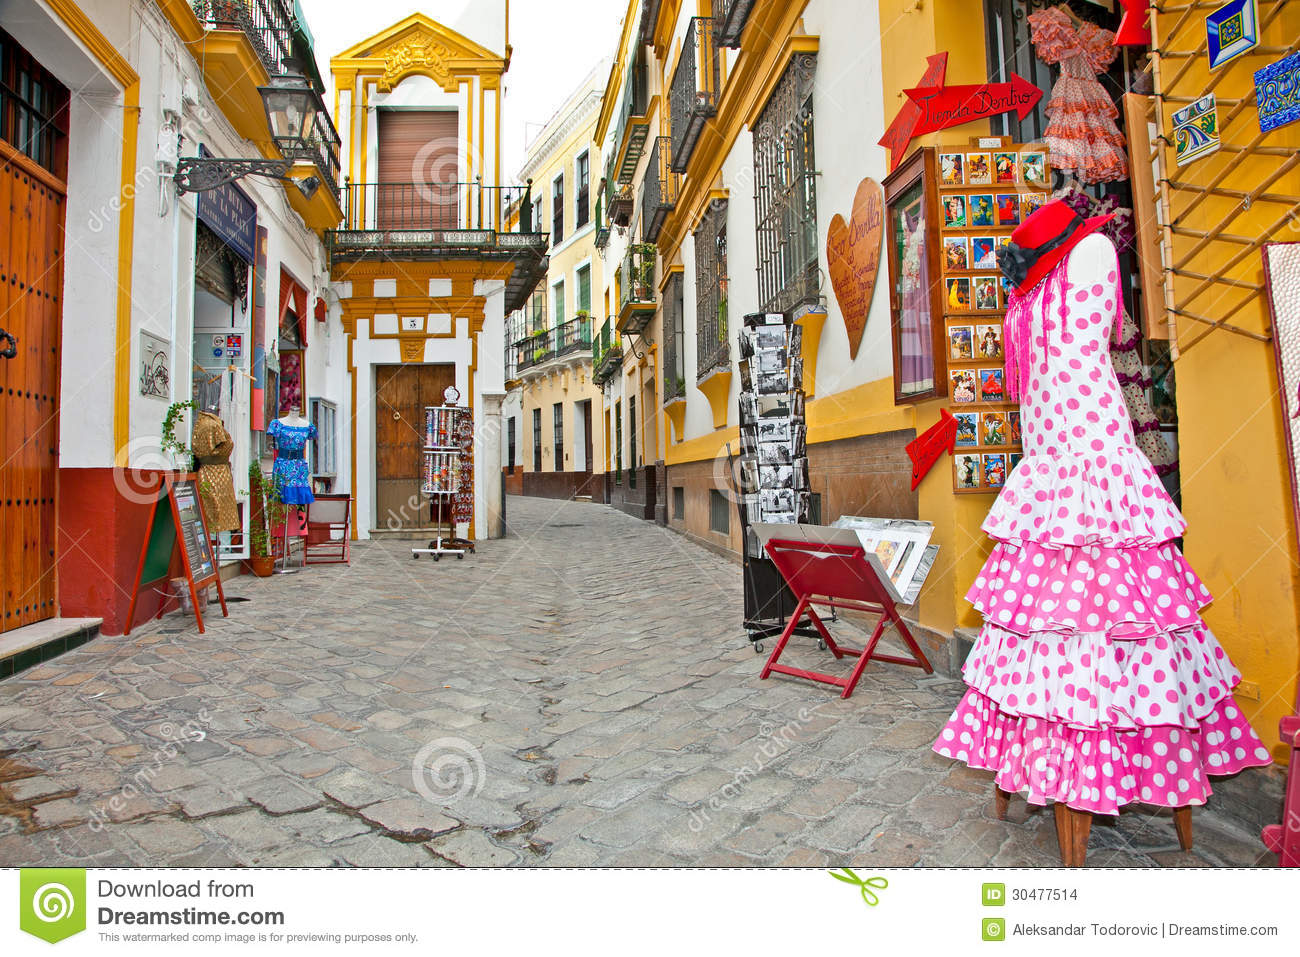 Sevilla Winkelen Shopping Street With Typical Flamenco Dress In Seville